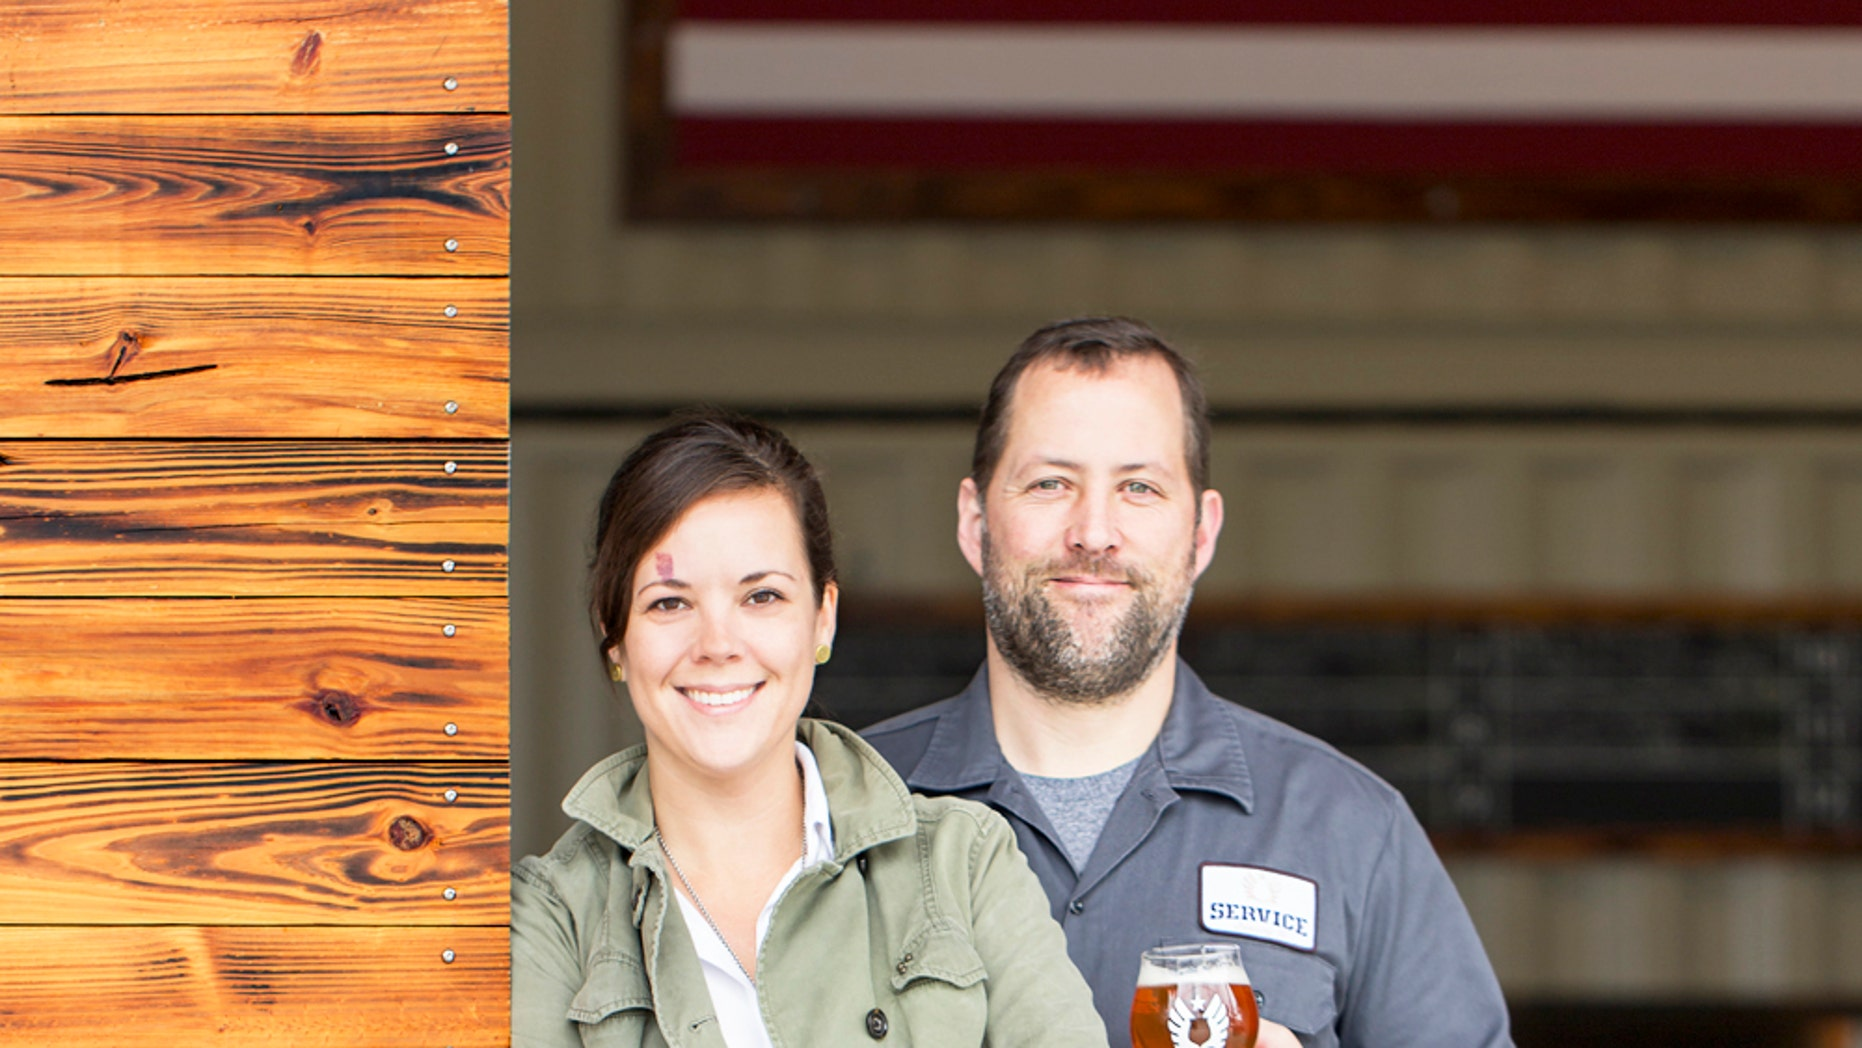 Service Brewing Co.'s Kevin Ryan and Meredith Sutton.